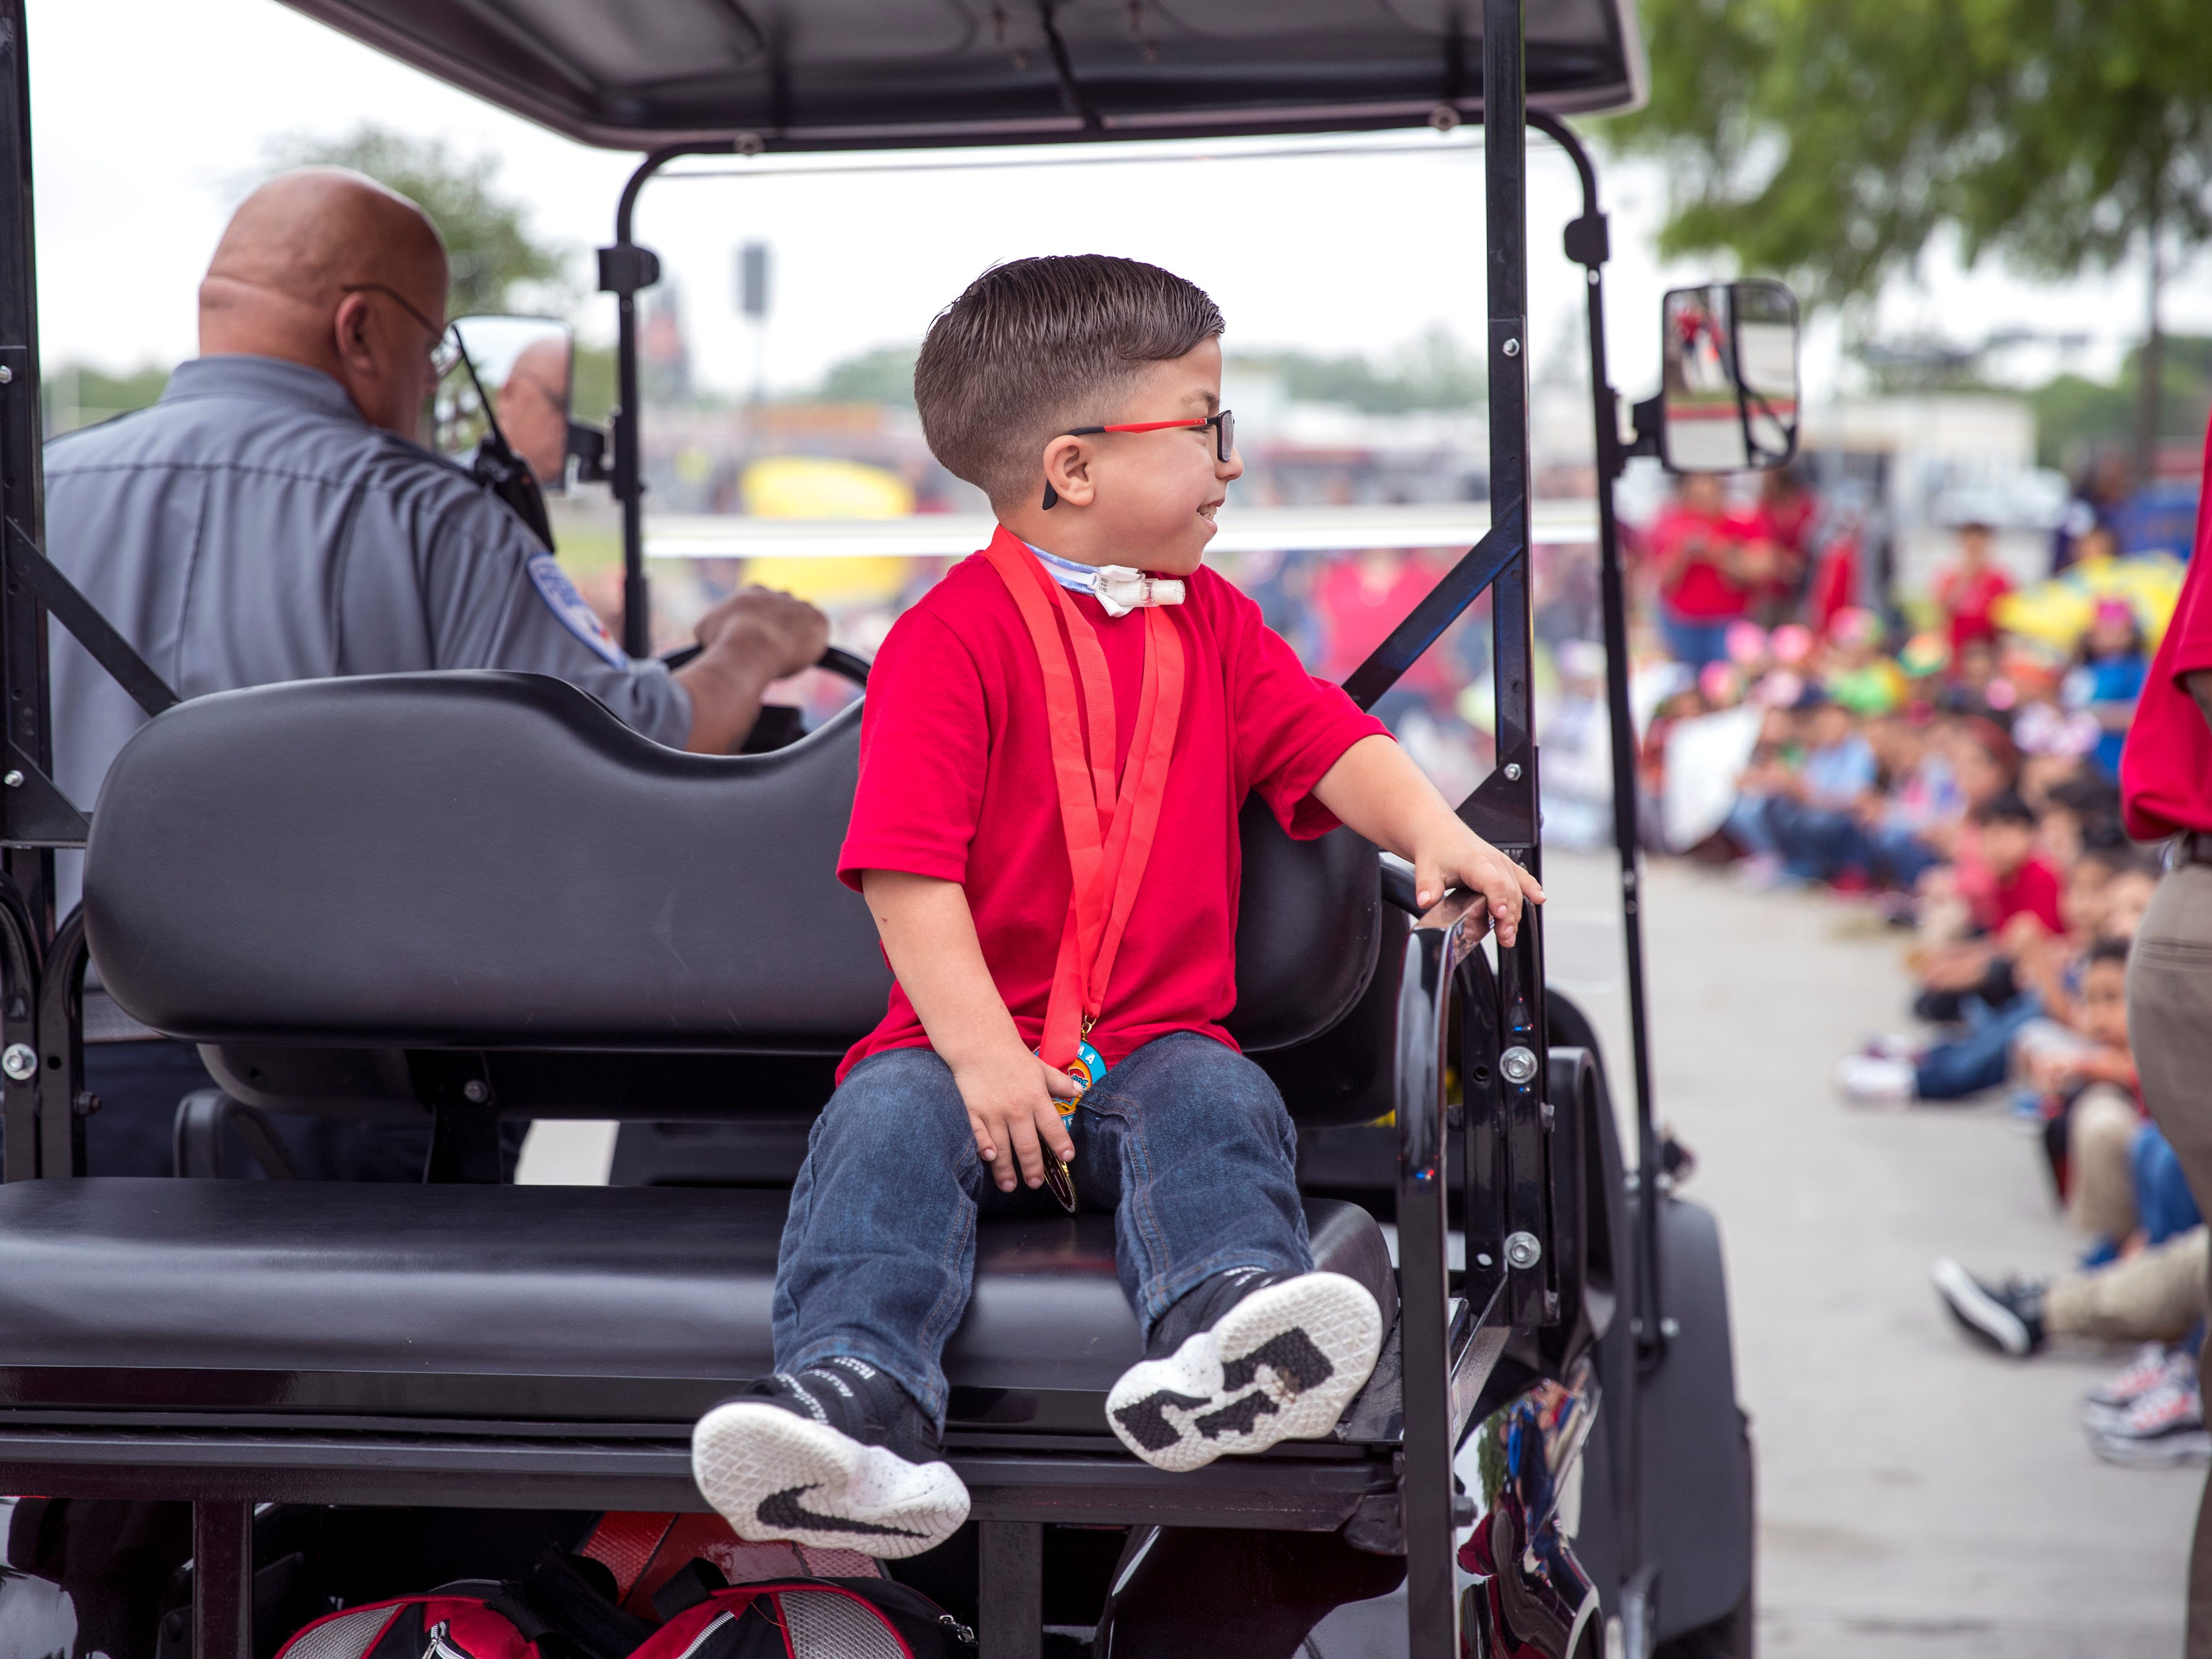 """Ethann Valdez, 9, had a parade in his honor at Garcia Elementary School on Wednesday, April 17, 2019. Diagnosed at the age of five with geleophysic dysplasia (known as dwarfism), Ethann will be out of school for the rest of the year as he undergoes open heart surgery for a valve replacement to the main aorta of his heart. The school wanted to send him off with a """"Best Wishes Parade"""" before he left."""